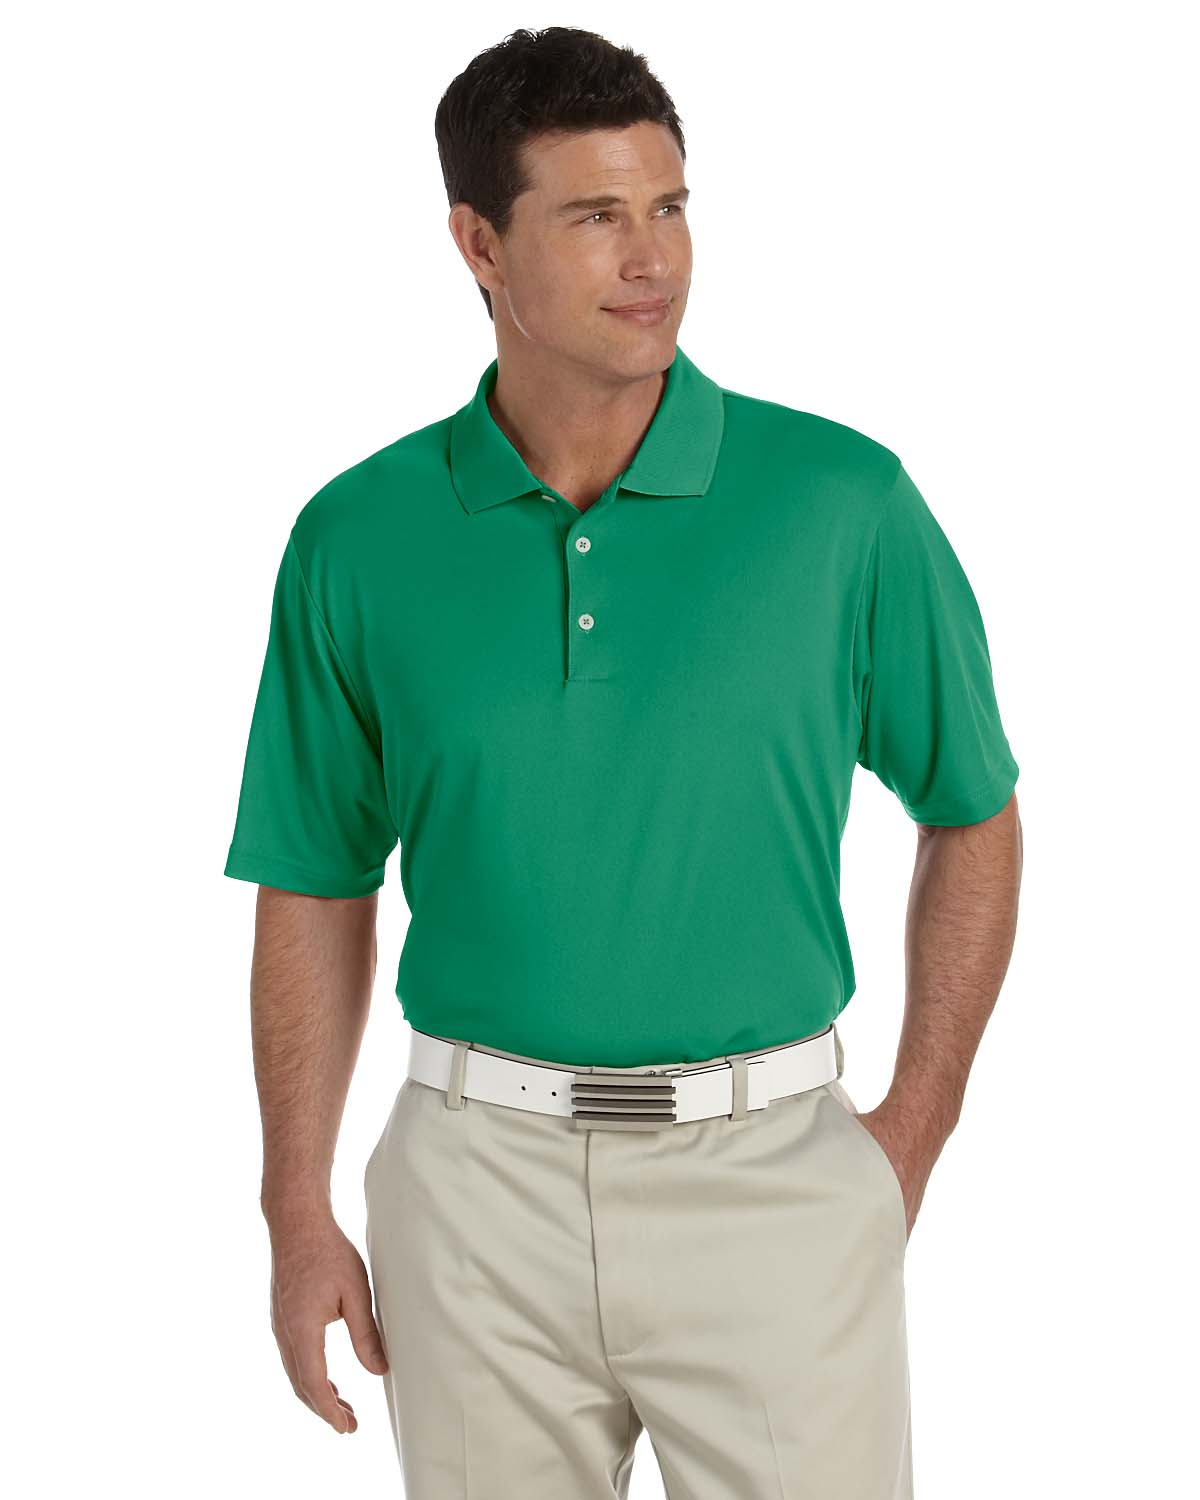 711b871d Adidas Golf Mens Climalite® Short-Sleeve Pique Polo | Premium ...